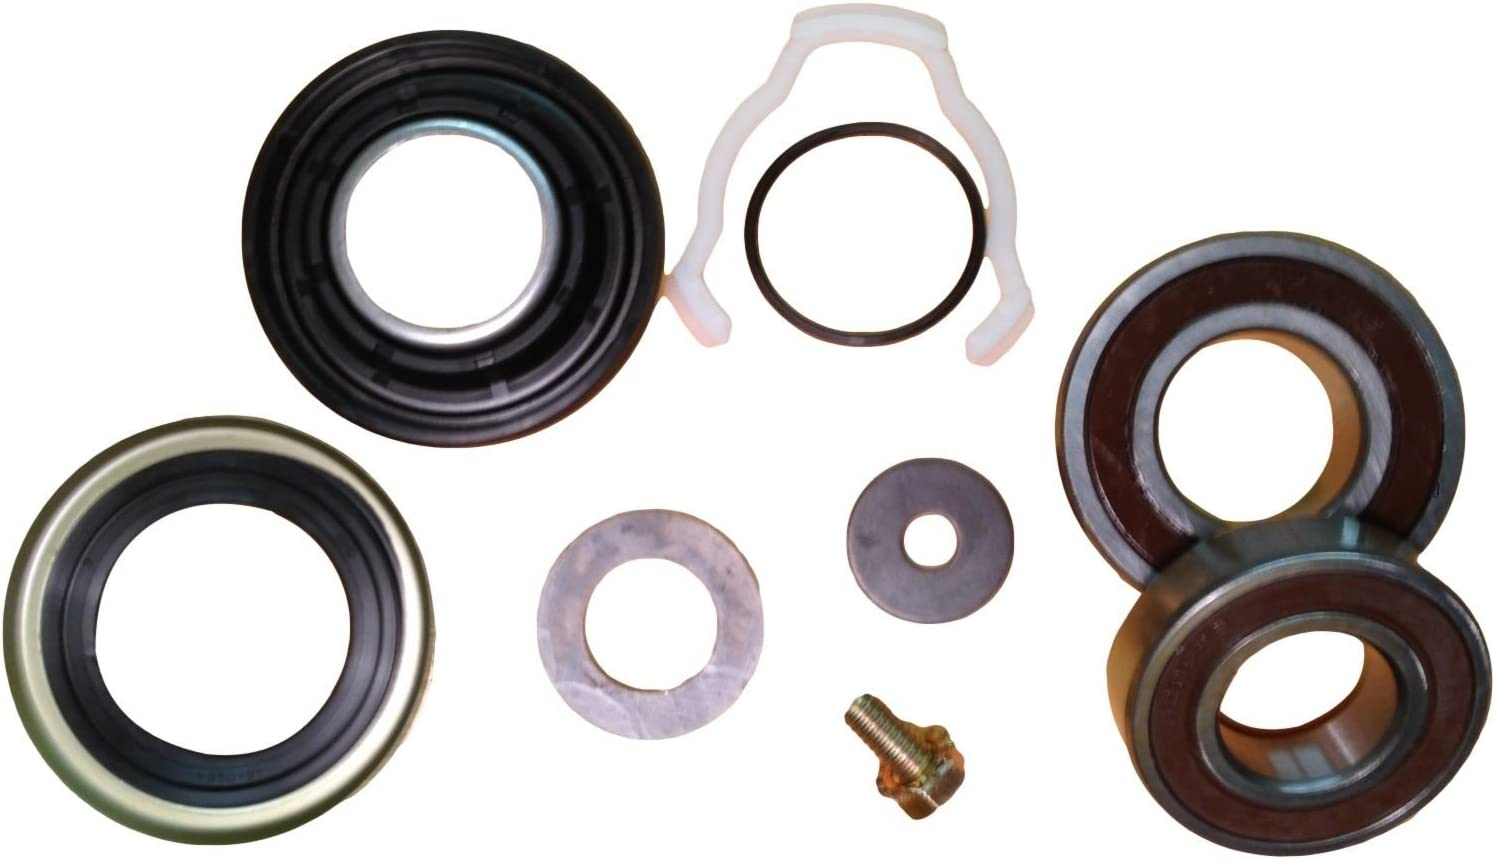 2 Maytag Neptune Washer Front Loader Bearing Seal and Washer Kit 12002022